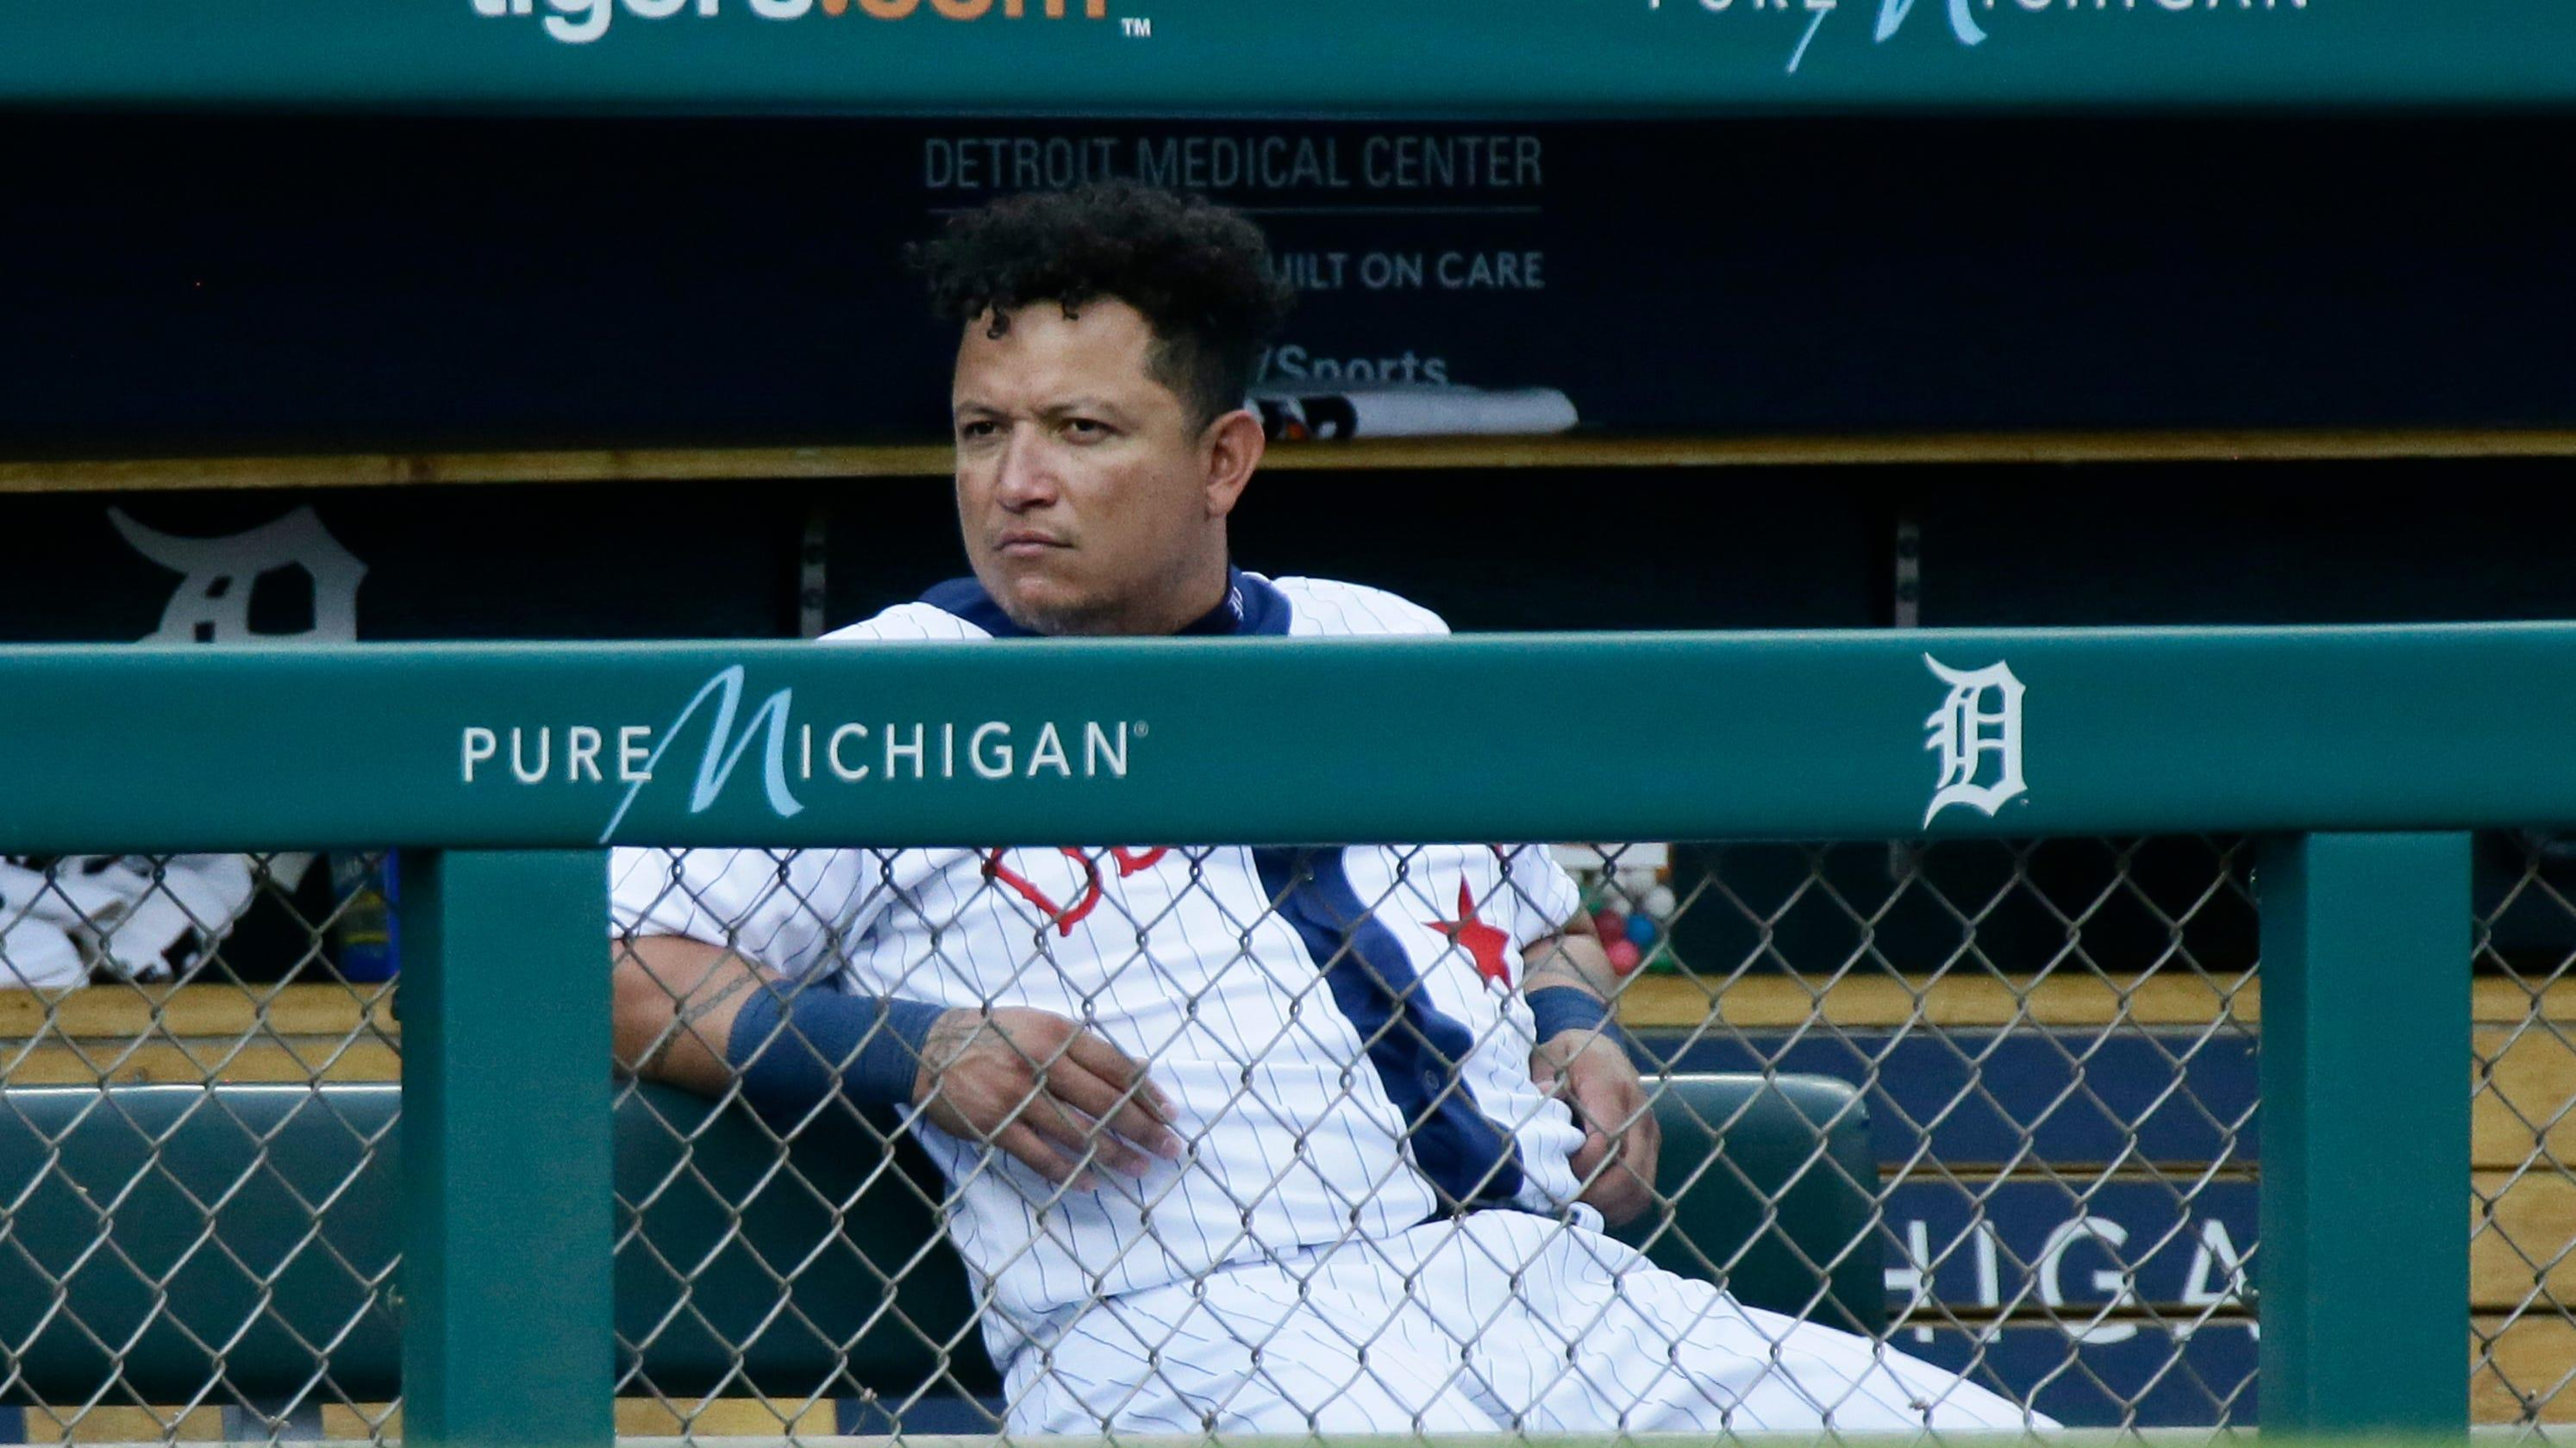 Remedy for Miguel Cabrera's knee pain: A full-on lifestyle and nutrition change